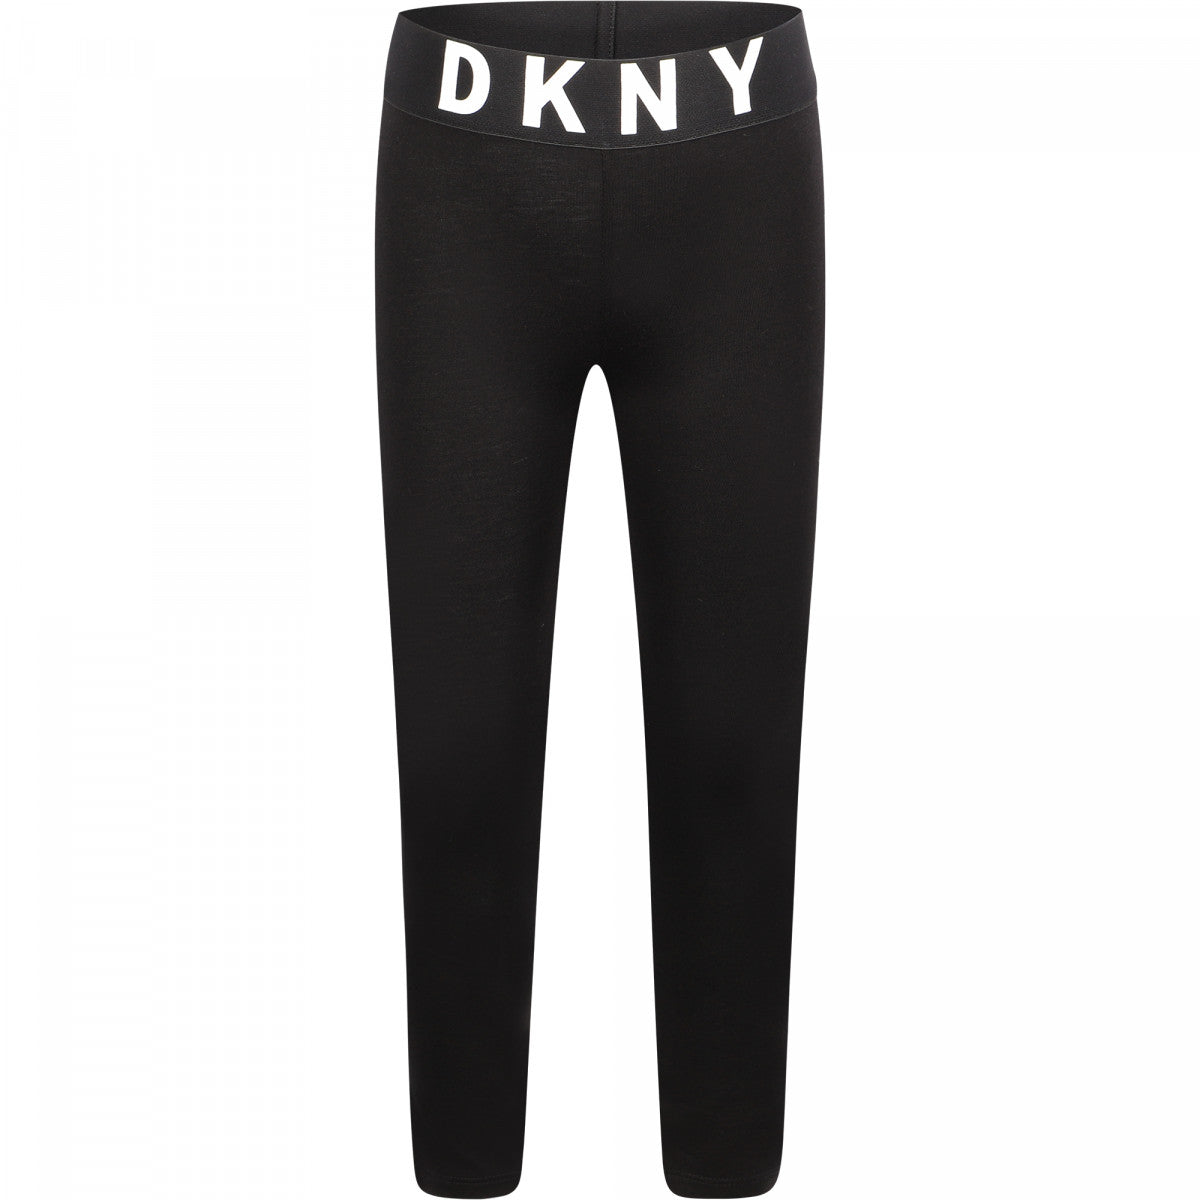 DKNY Girls Logo Leggings